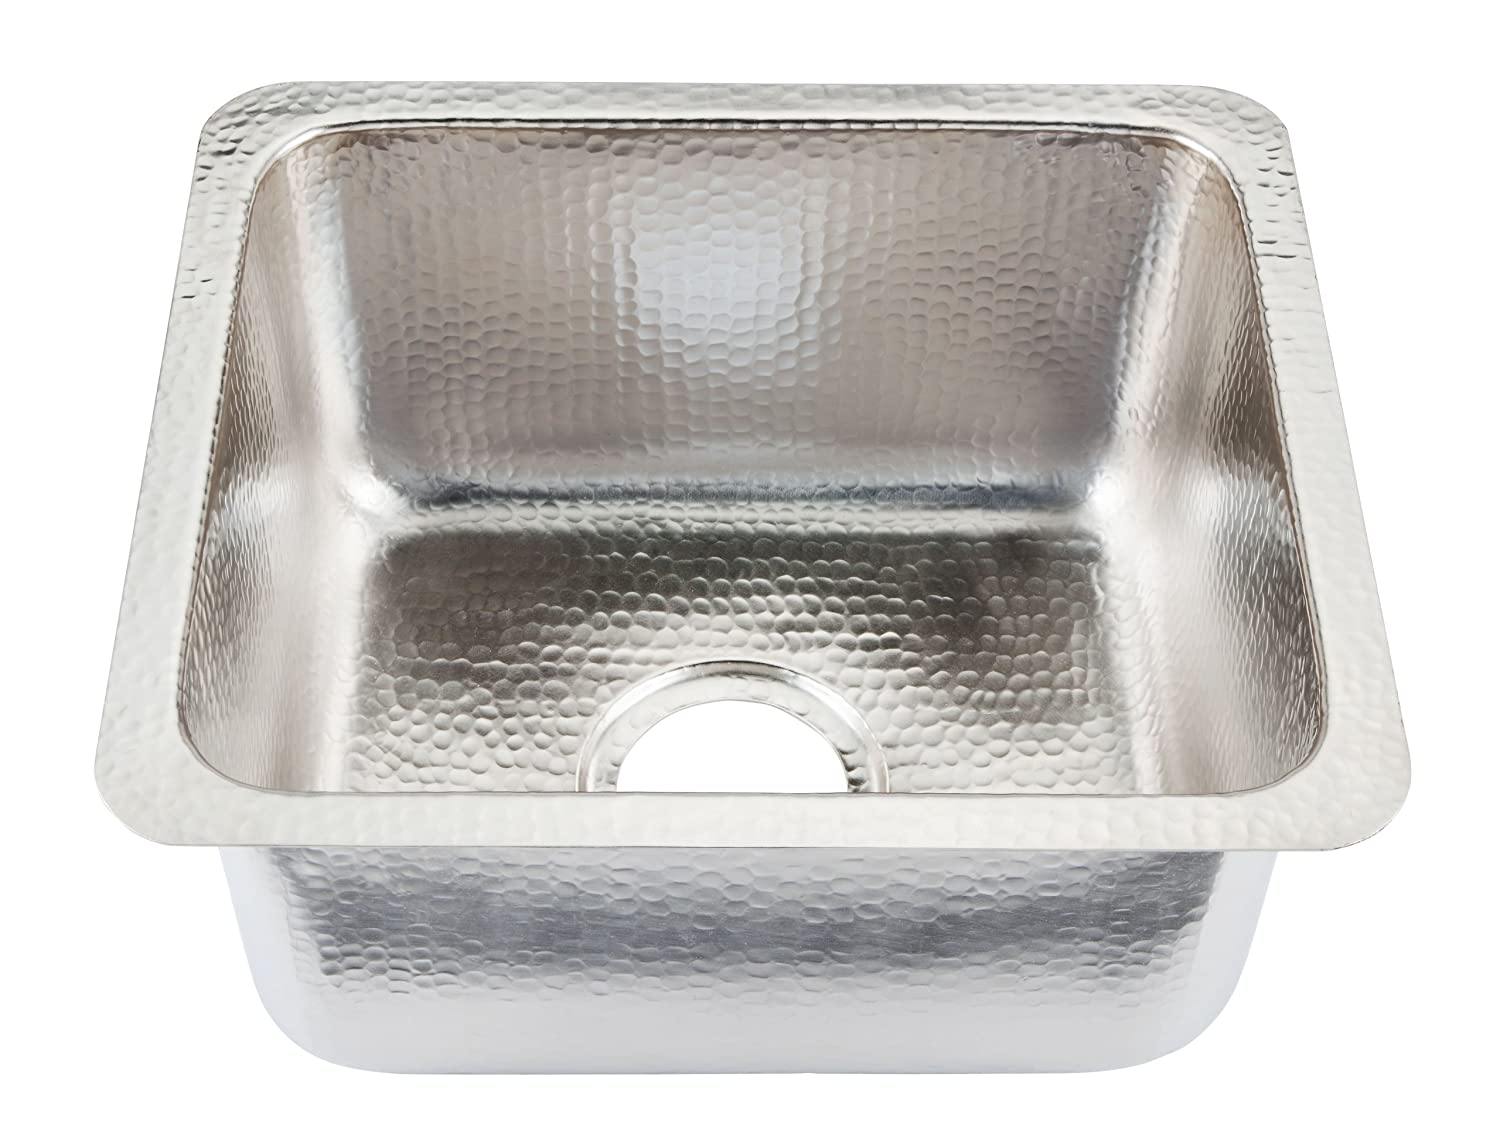 Lovely Sinkology Rembrant Undermount Handcrafted Nickel Sink 17 Inch Bar Prep Sink  In Nickel   Bar Sink Faucets   Amazon.com